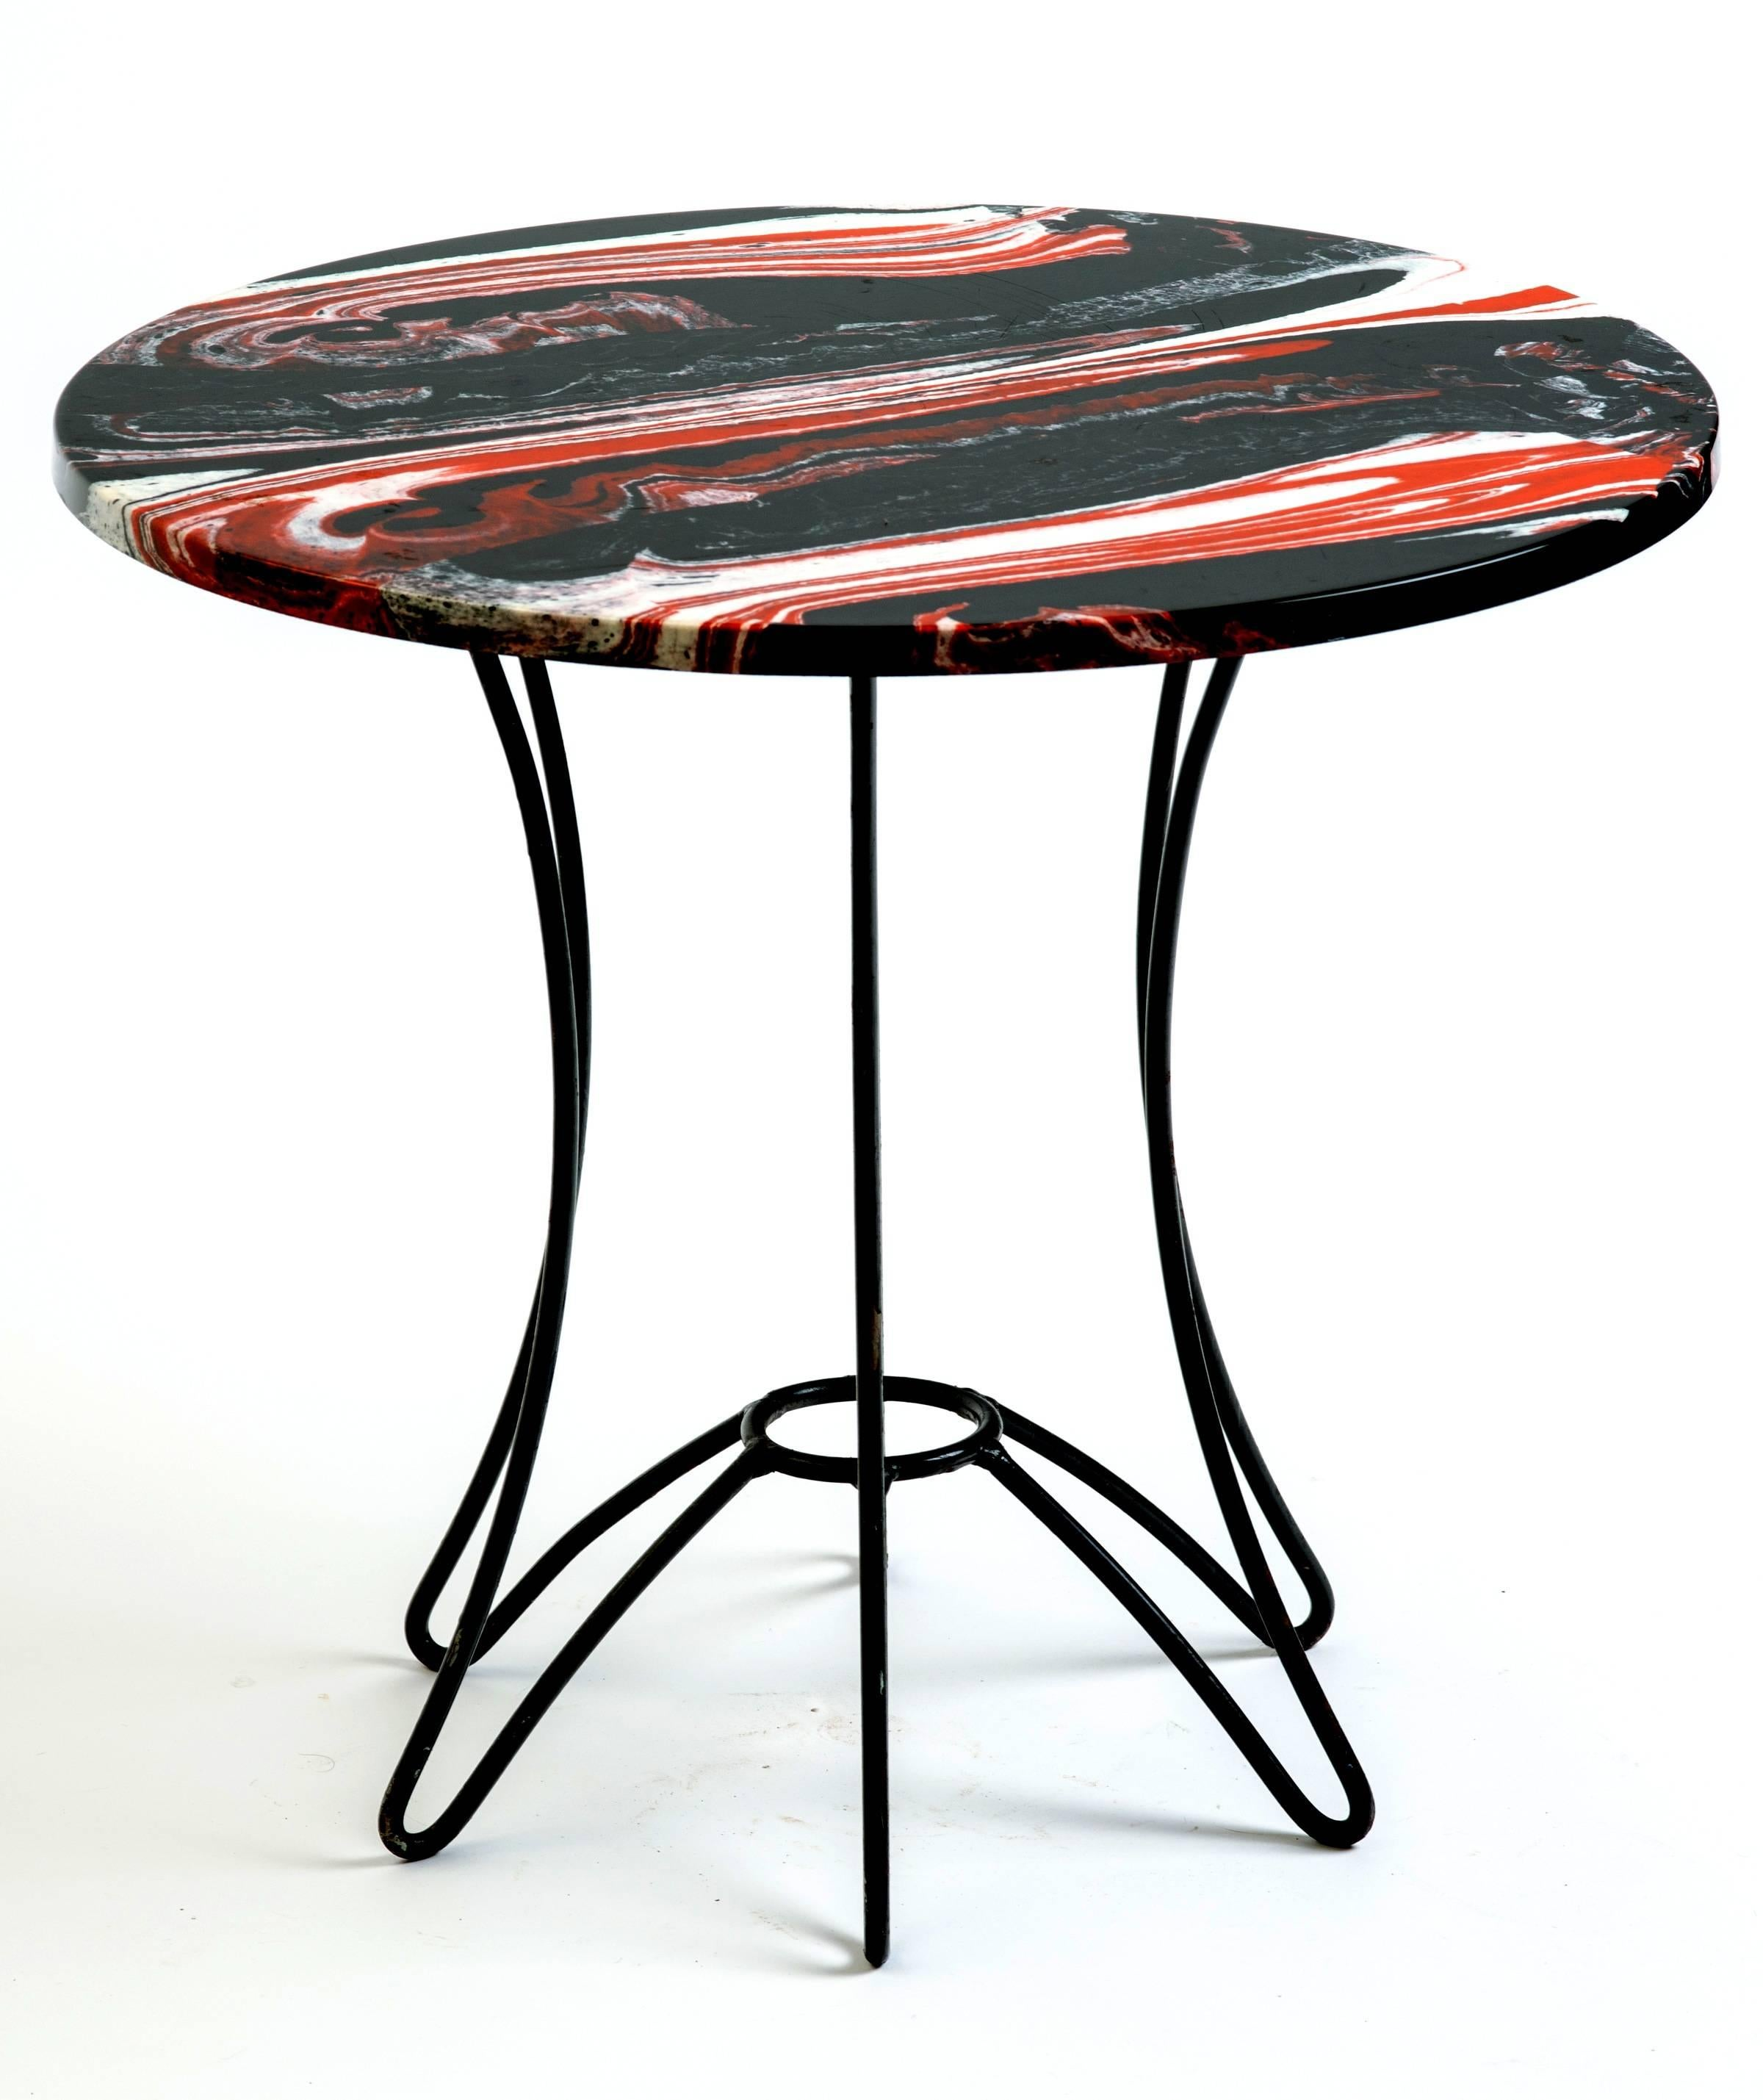 Red, Black And White Marble Side Table For Sale At 1stdibs